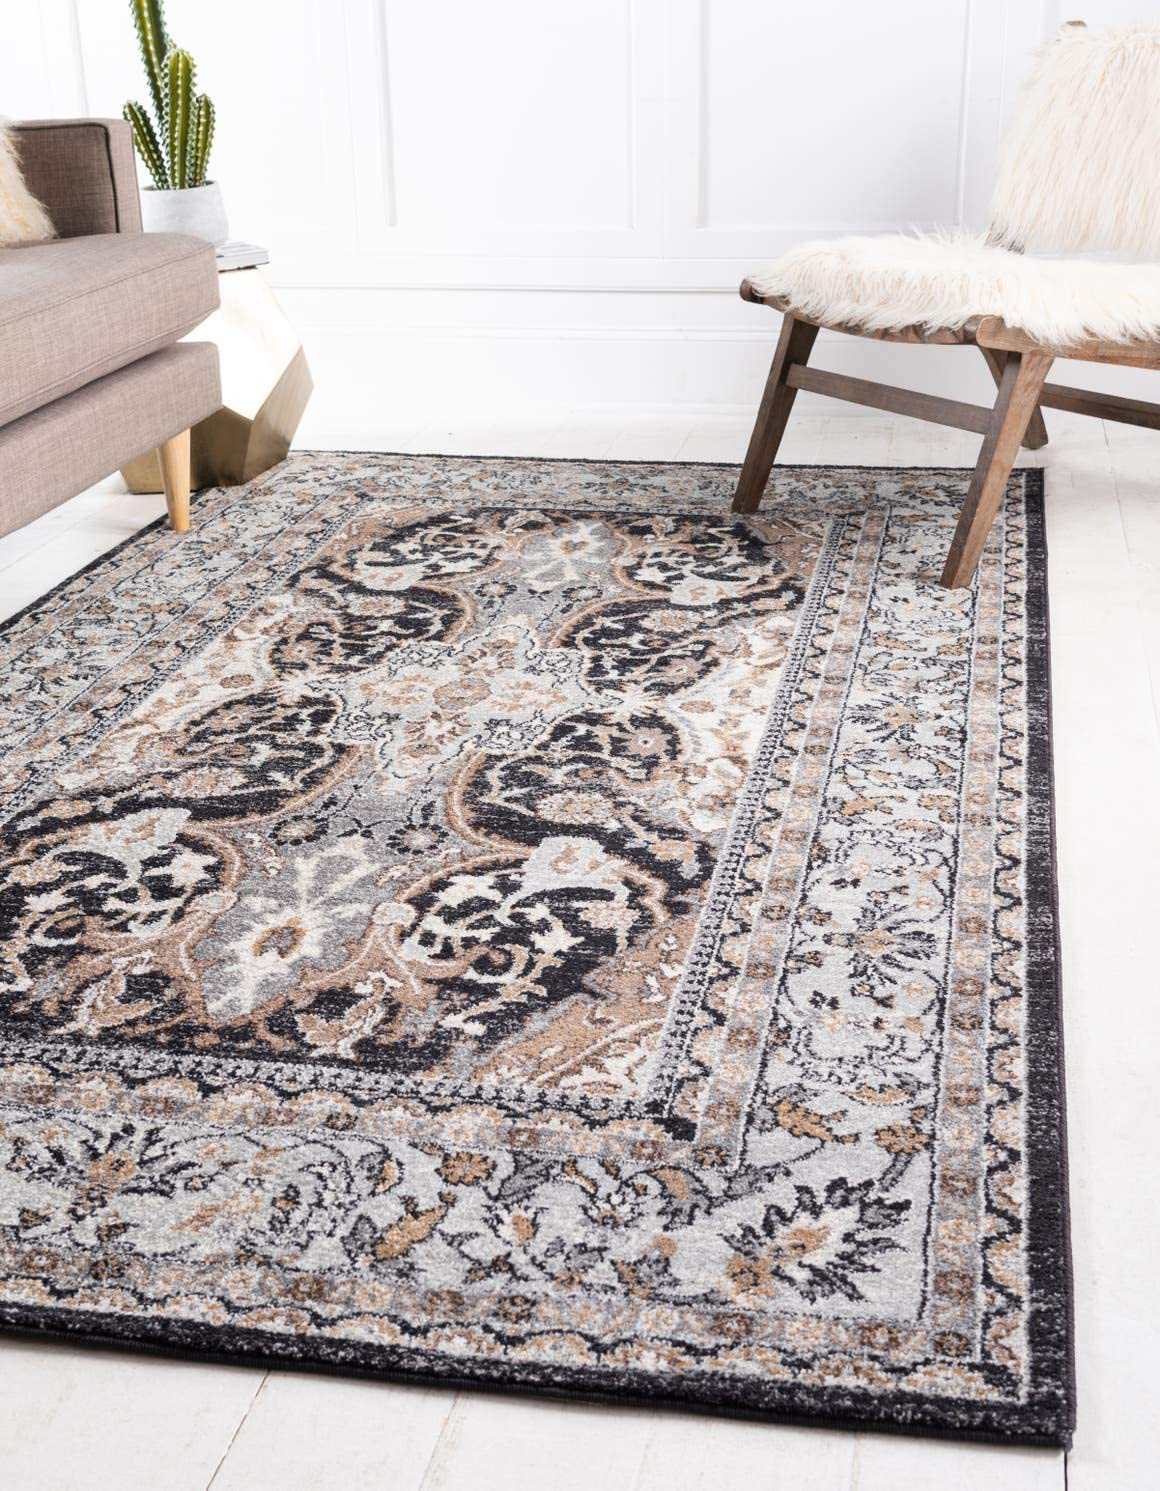 Unique Loom Tradition Collection Classic Southwestern Charcoal Area Rug 9 0 x 12 0